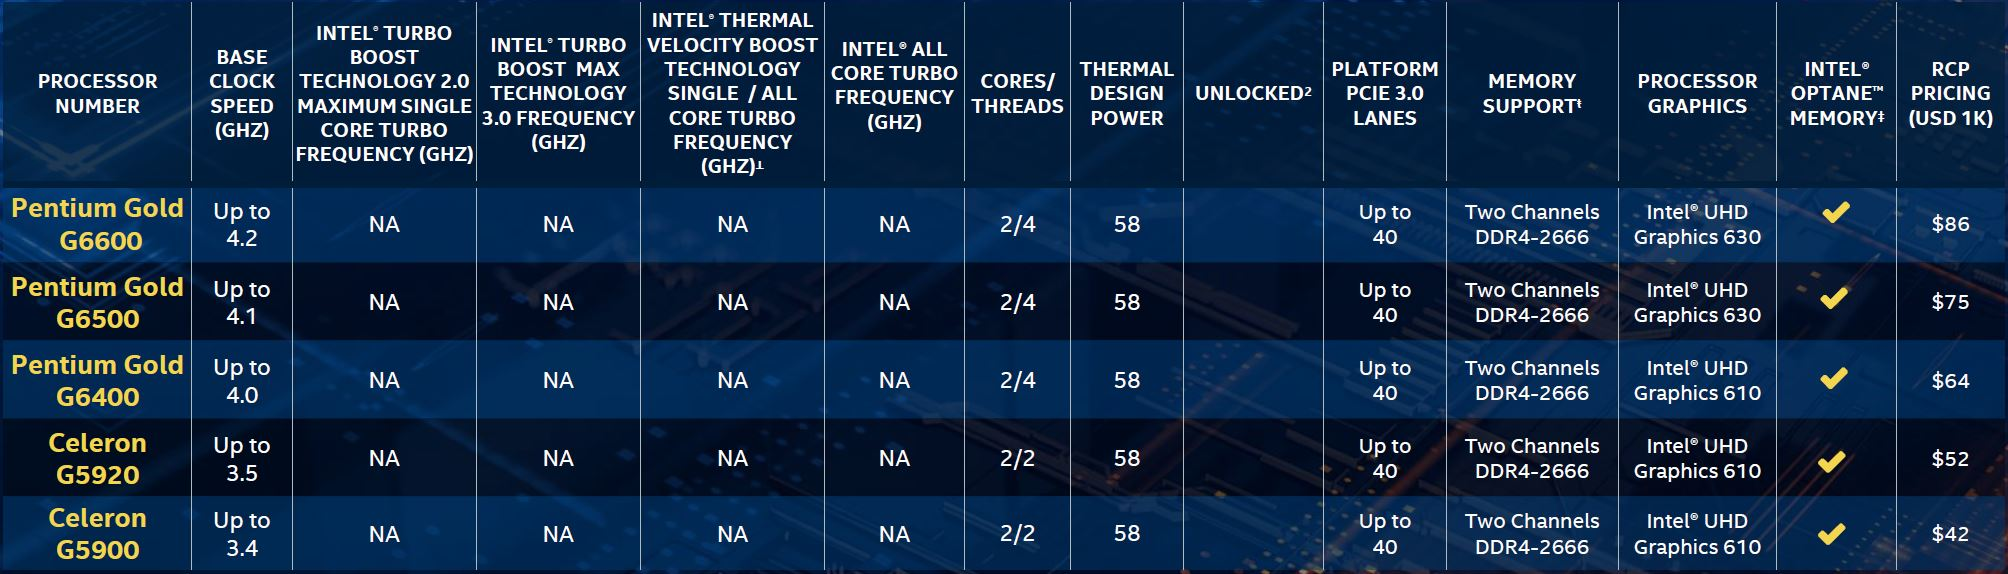 10th Gen Intel Core Pentium And Celeron Models